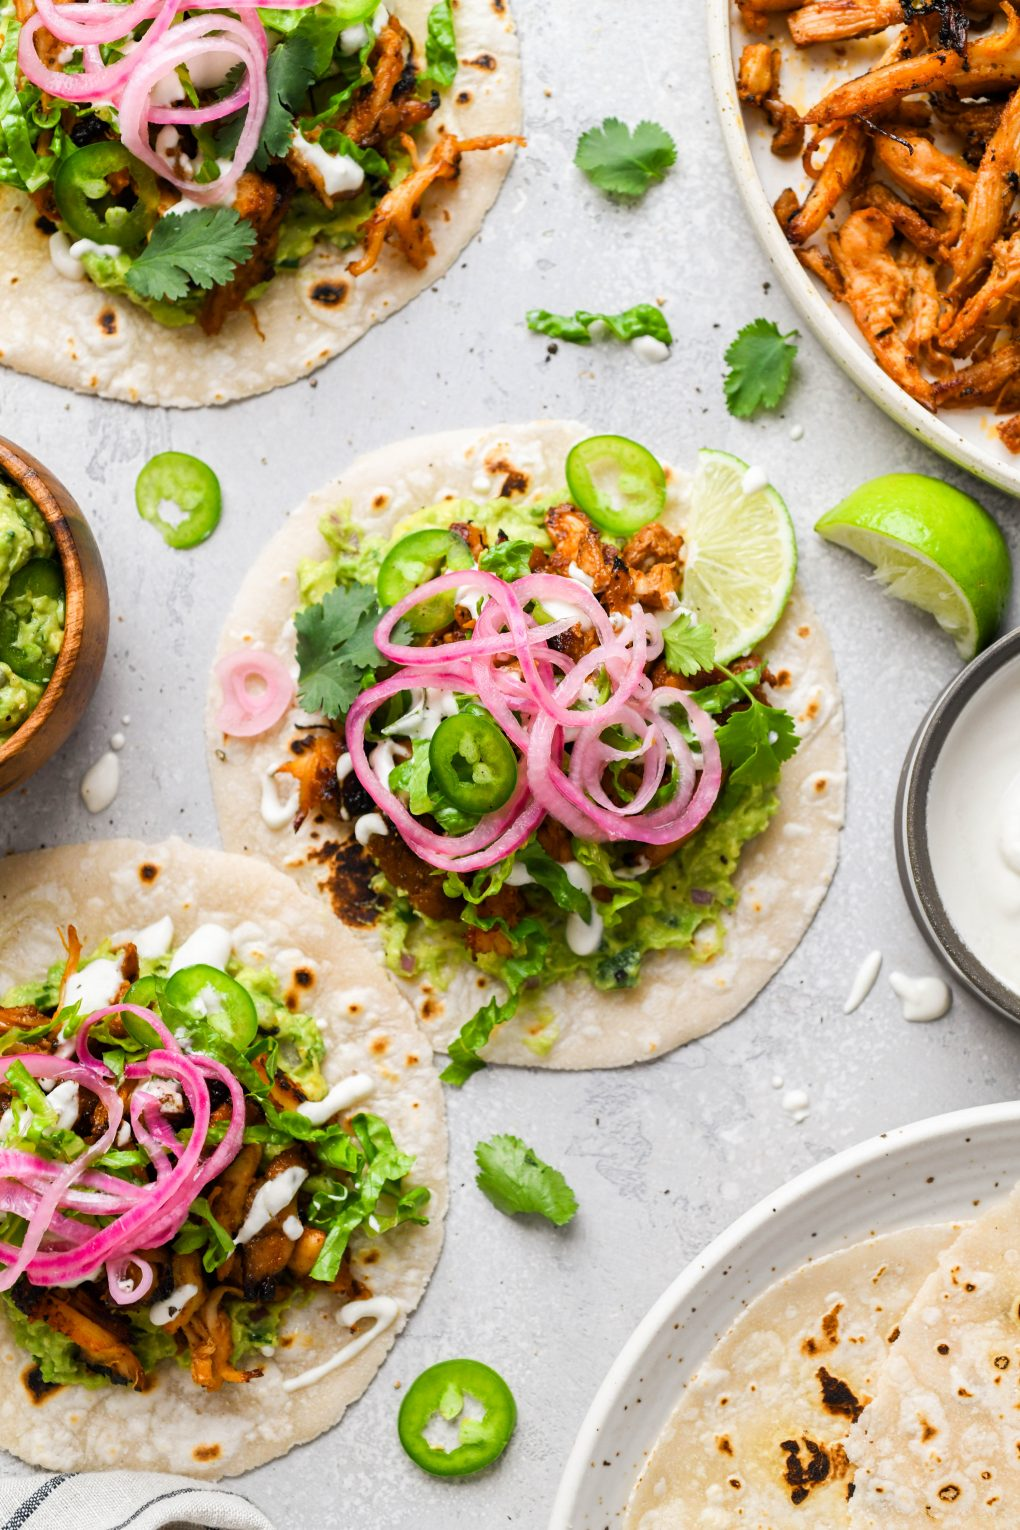 Overhead image of a few flat laid tacos on a light colored surface. They are shredded chicken tacos filled with shredded romaine, sliced jalapeno, dairy free sour cream, guacamole, cilantro, and pickled red onions.